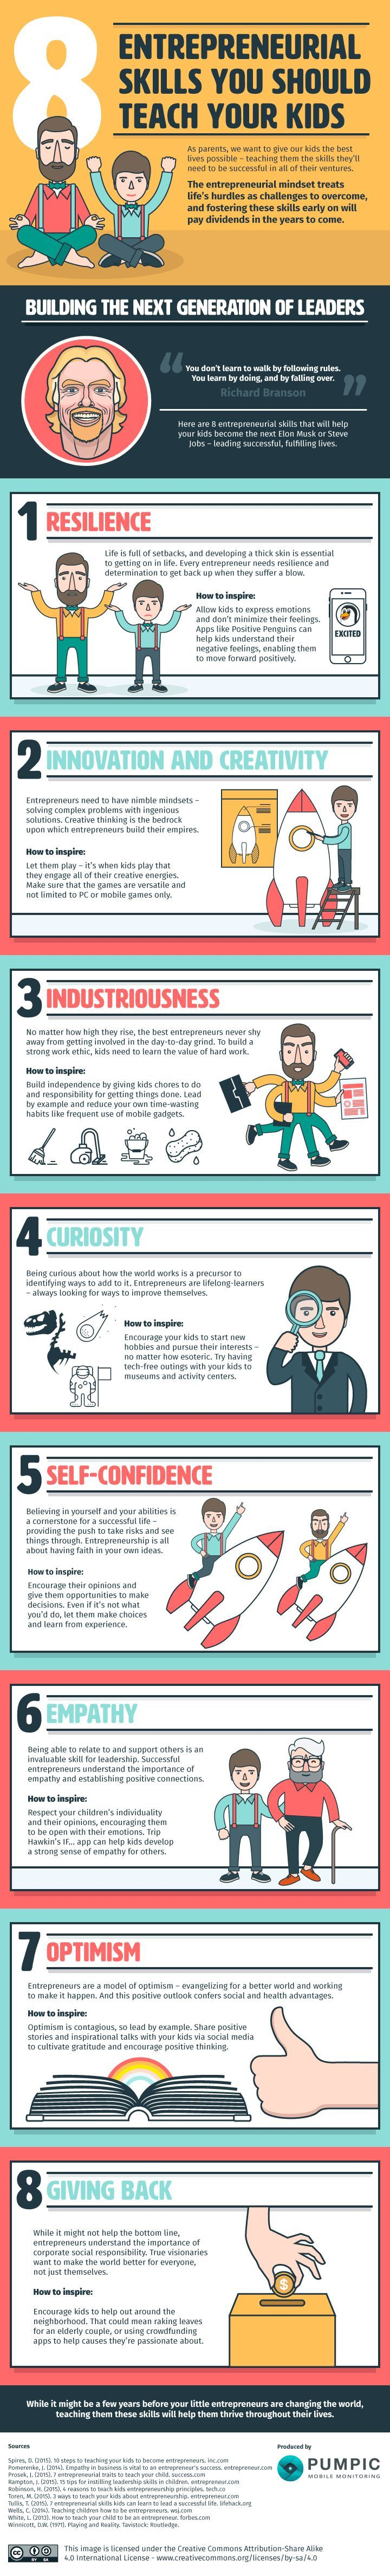 Entrepreneurial skills kids should learn. From how to teach empathy to ideas for fostering resilience, this infographic has some great tips for parents!